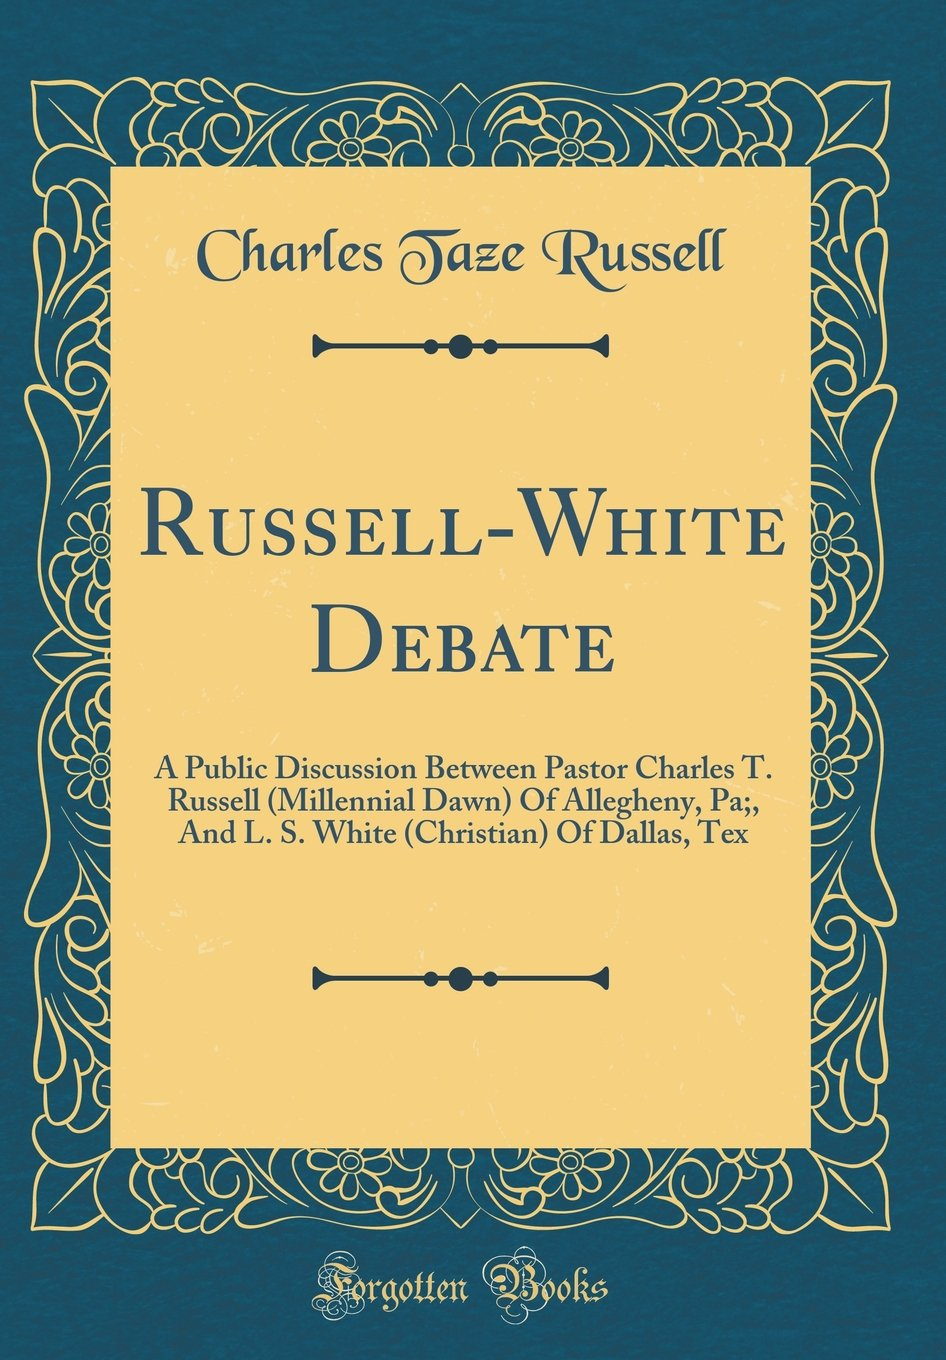 Russell-White Debate: A Public Discussion Between Pastor Charles T. Russell (Millennial Dawn) of Allegheny, Pa;, and L. S. White (Christian) of Dallas, Tex (Classic Reprint) pdf epub